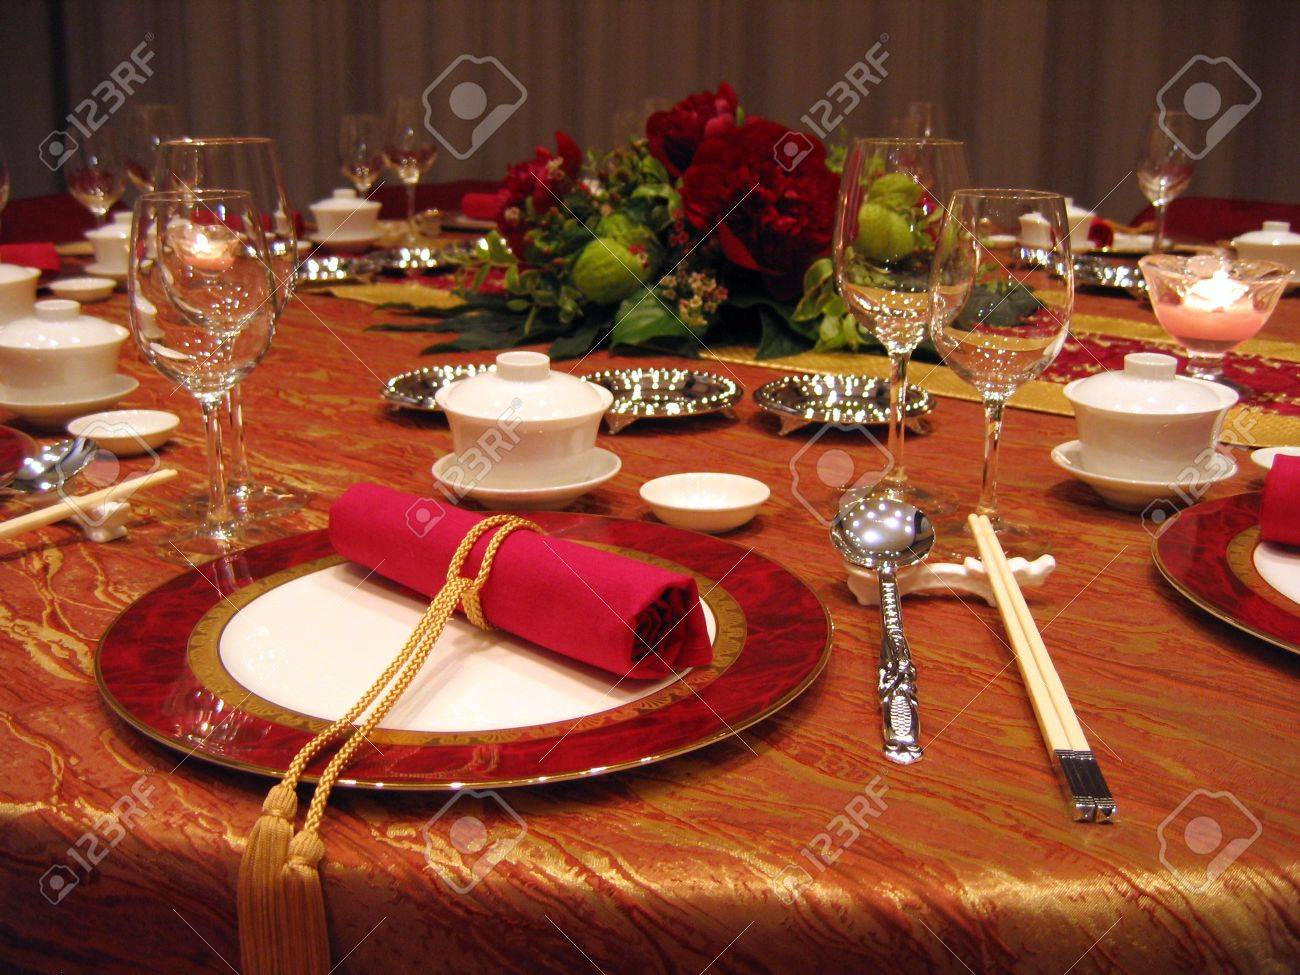 Chinese table setting - Chinese Wedding Banquet Table Setting Stock Photo 586102